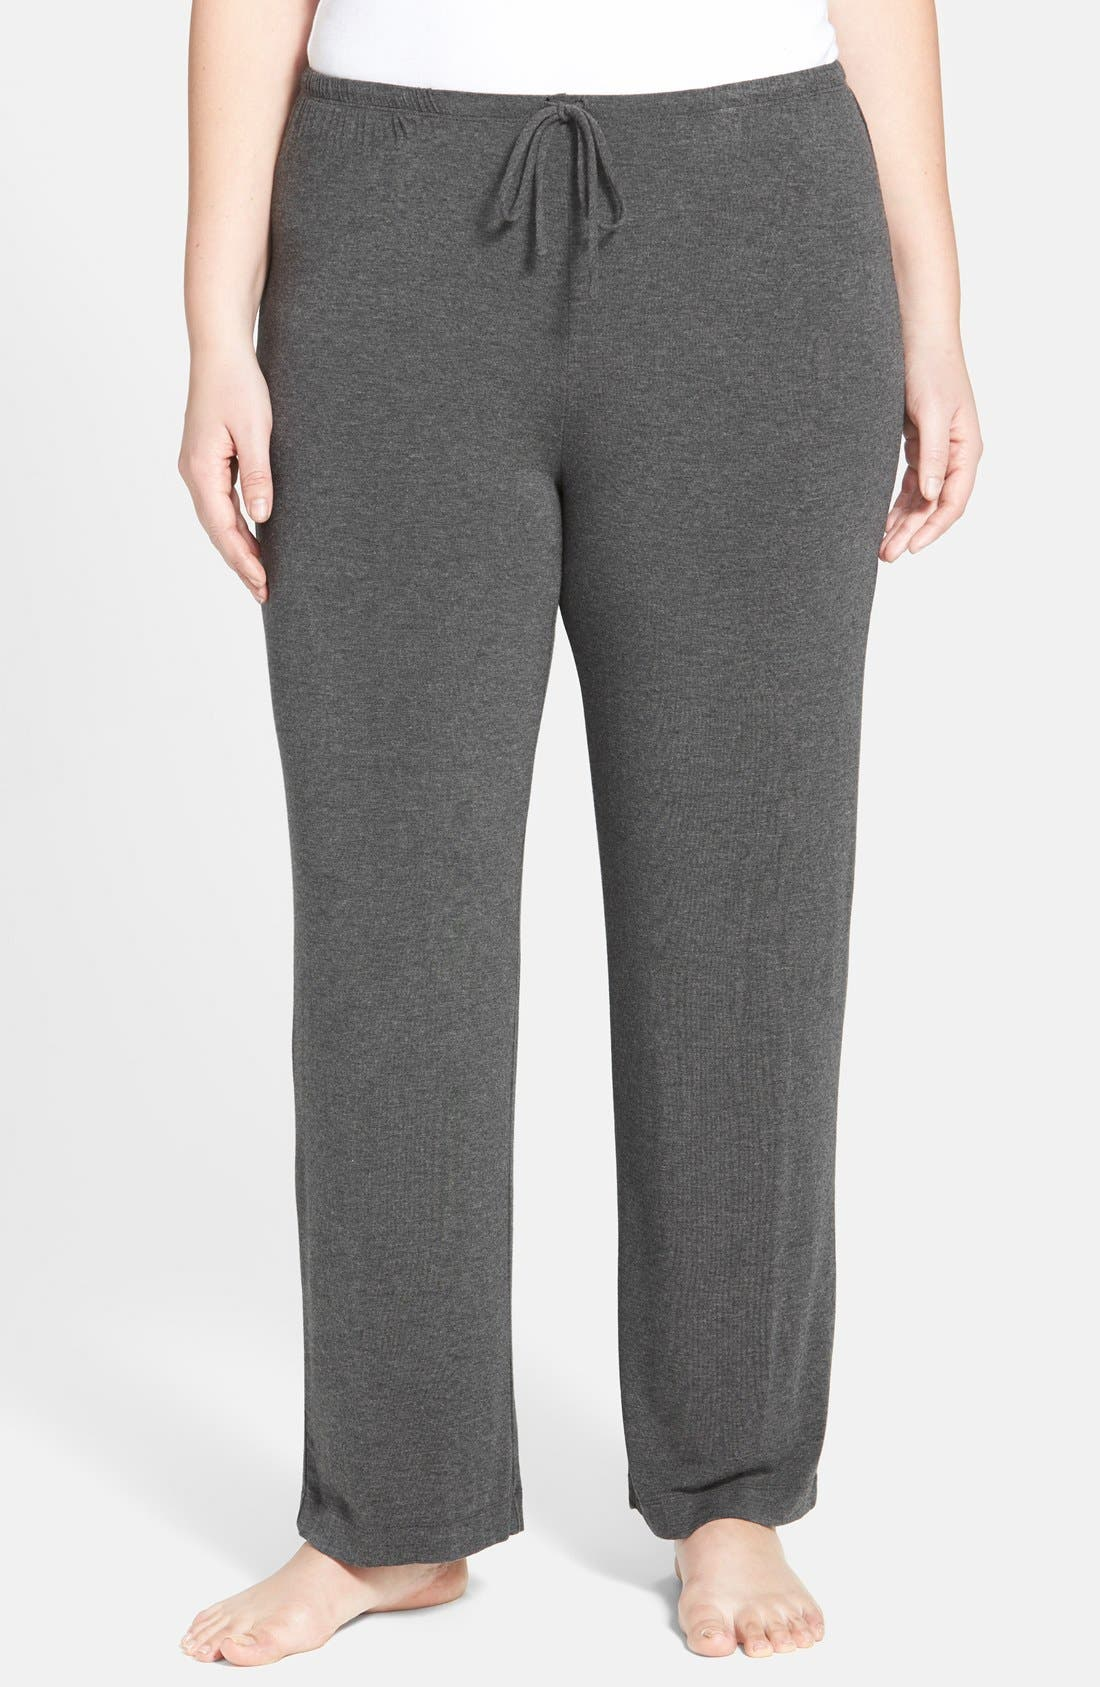 Alternate Image 1 Selected - DKNY 'Urban Essentials' Pants (Plus Size)